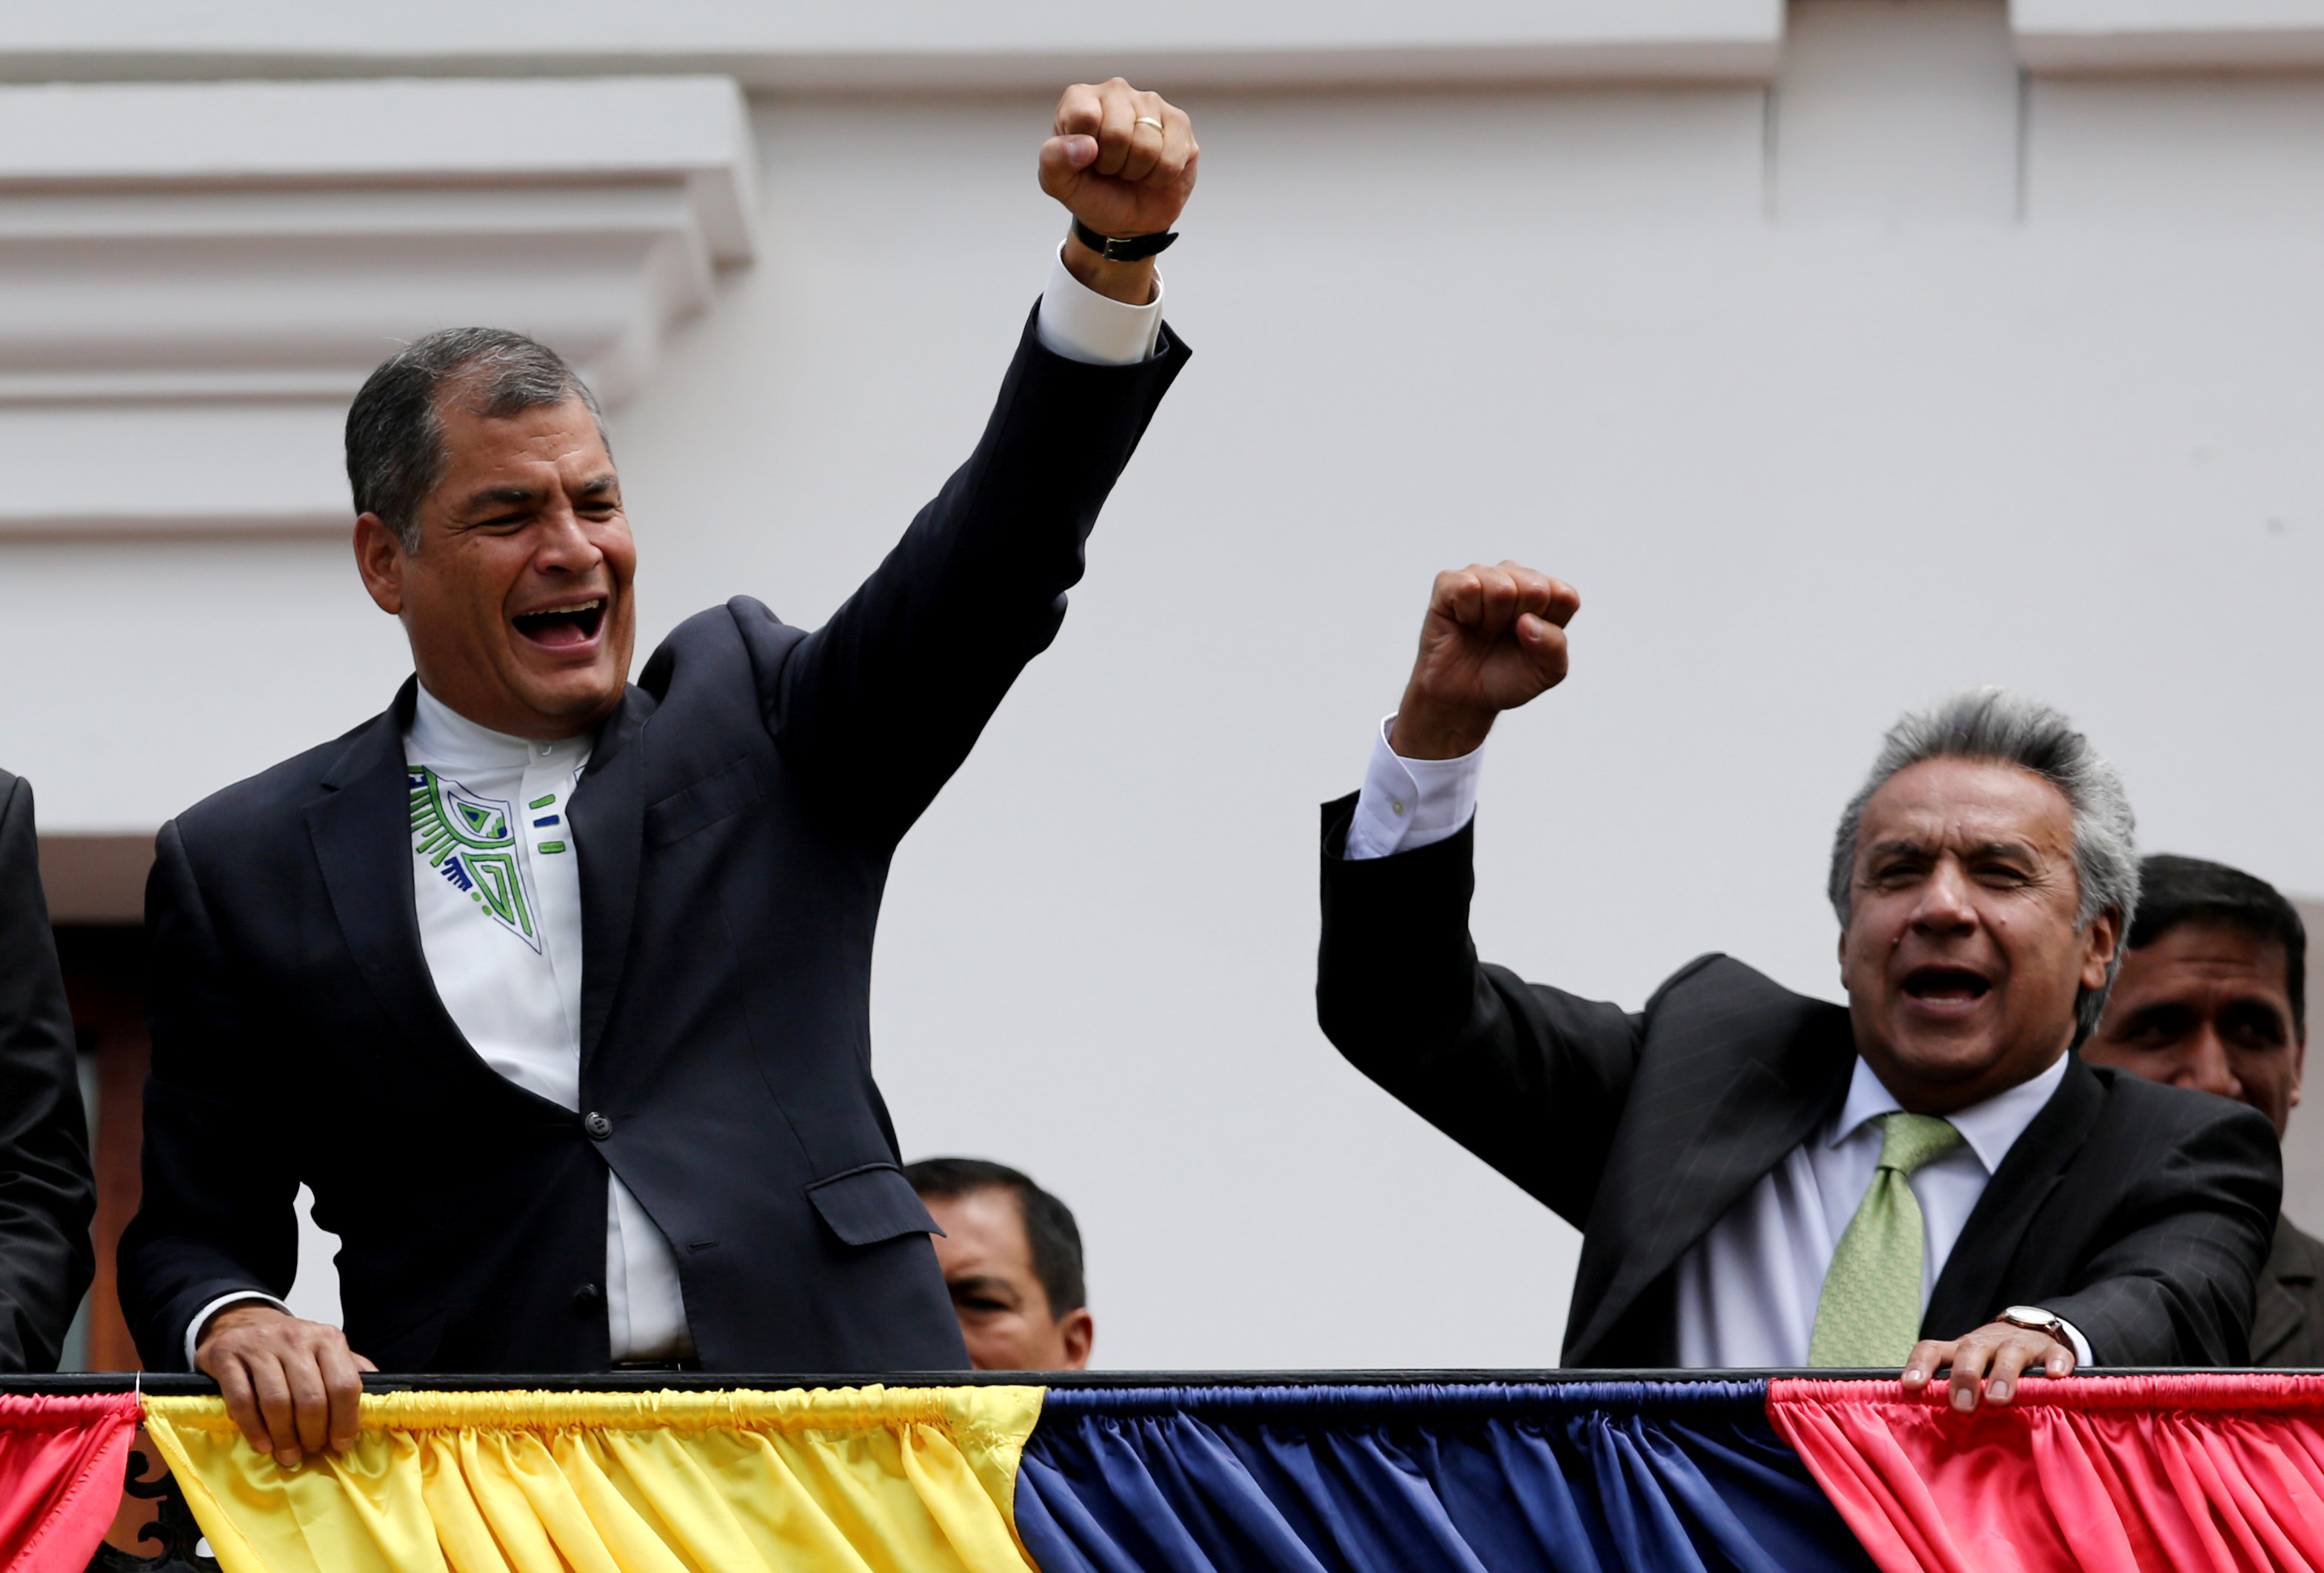 Lenin Moreno's Win in Ecuador Lifts Leftist Spirits in Latin America